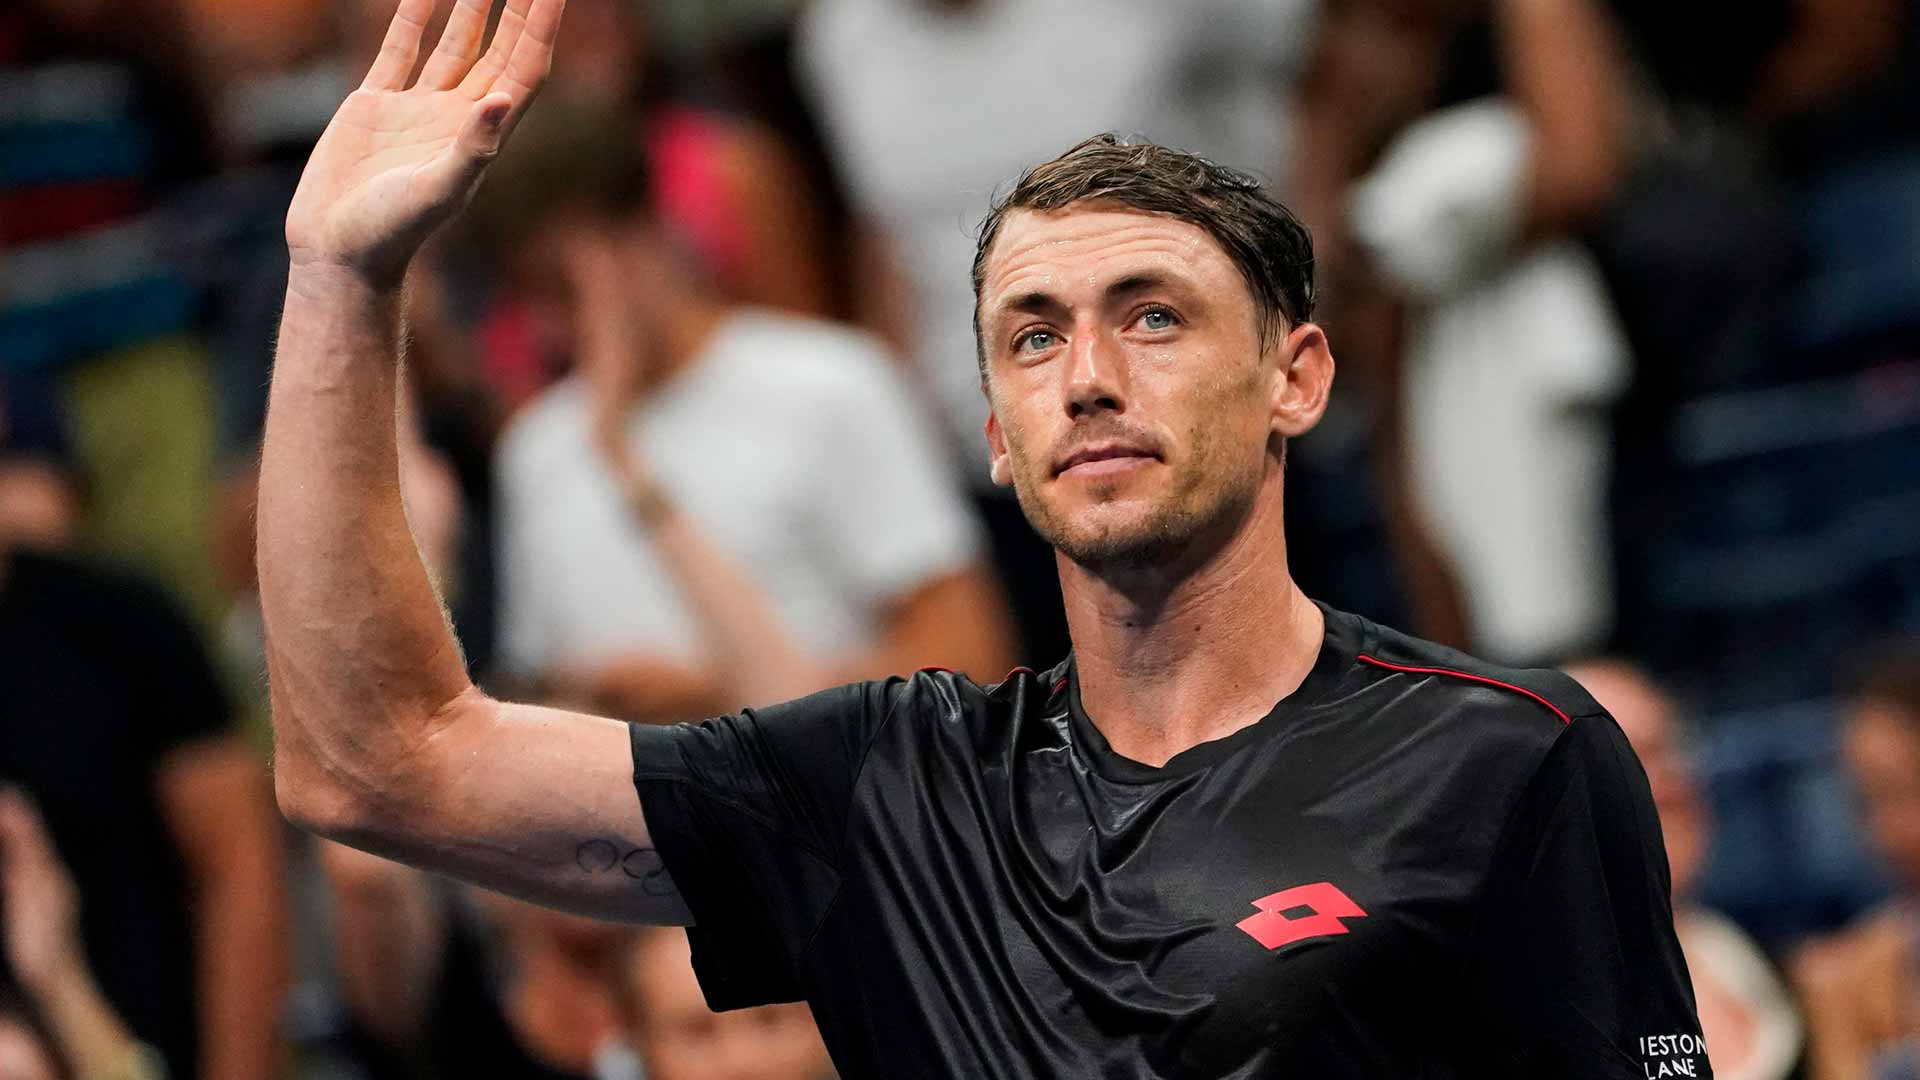 Tell us what you think is going through @johnhmillman's mind �� https://t.co/7dz0K1dIJc